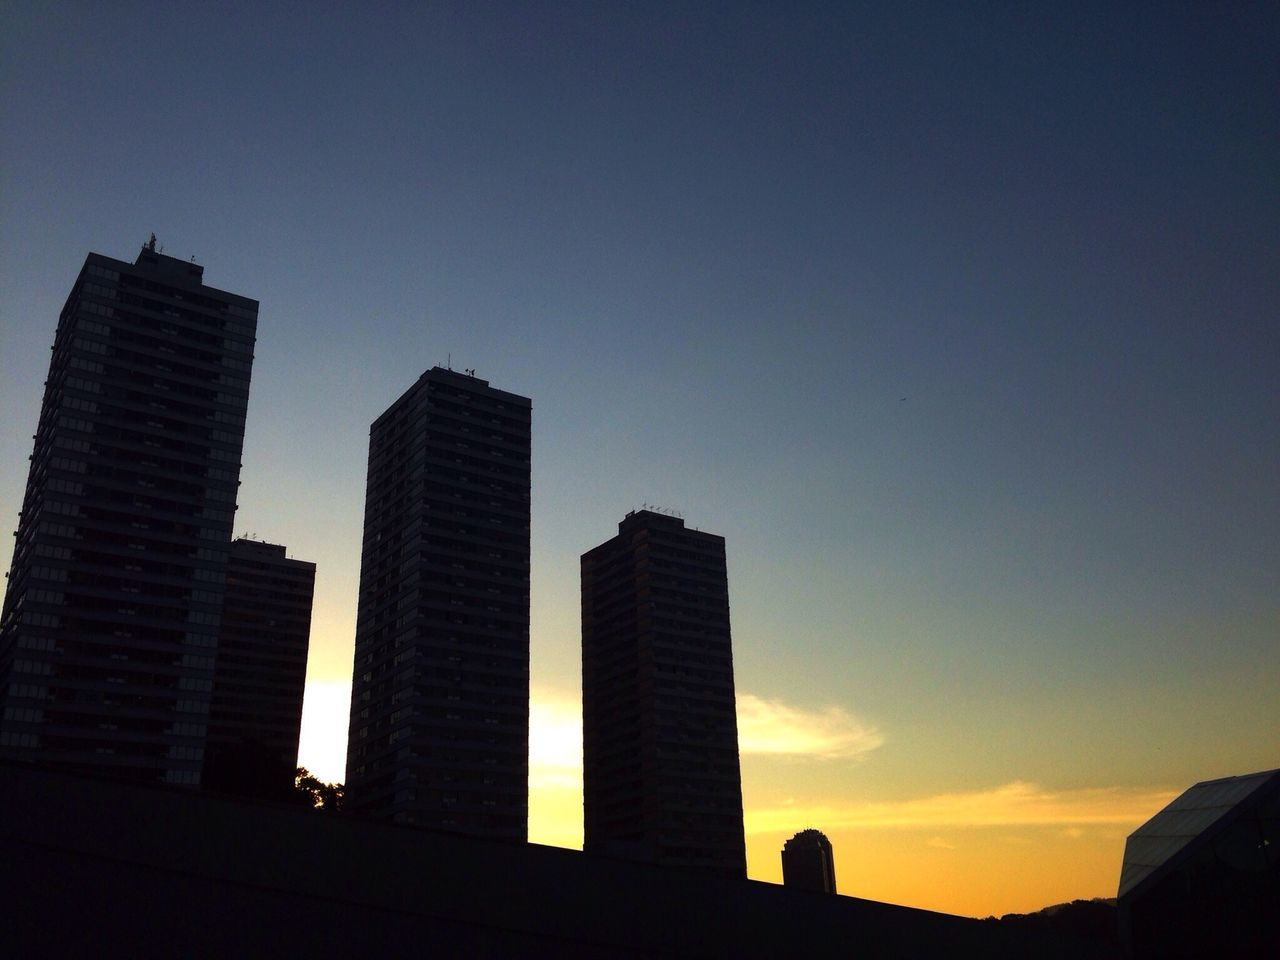 Low Angle View Of Silhouette Buildings Against Blue Sky